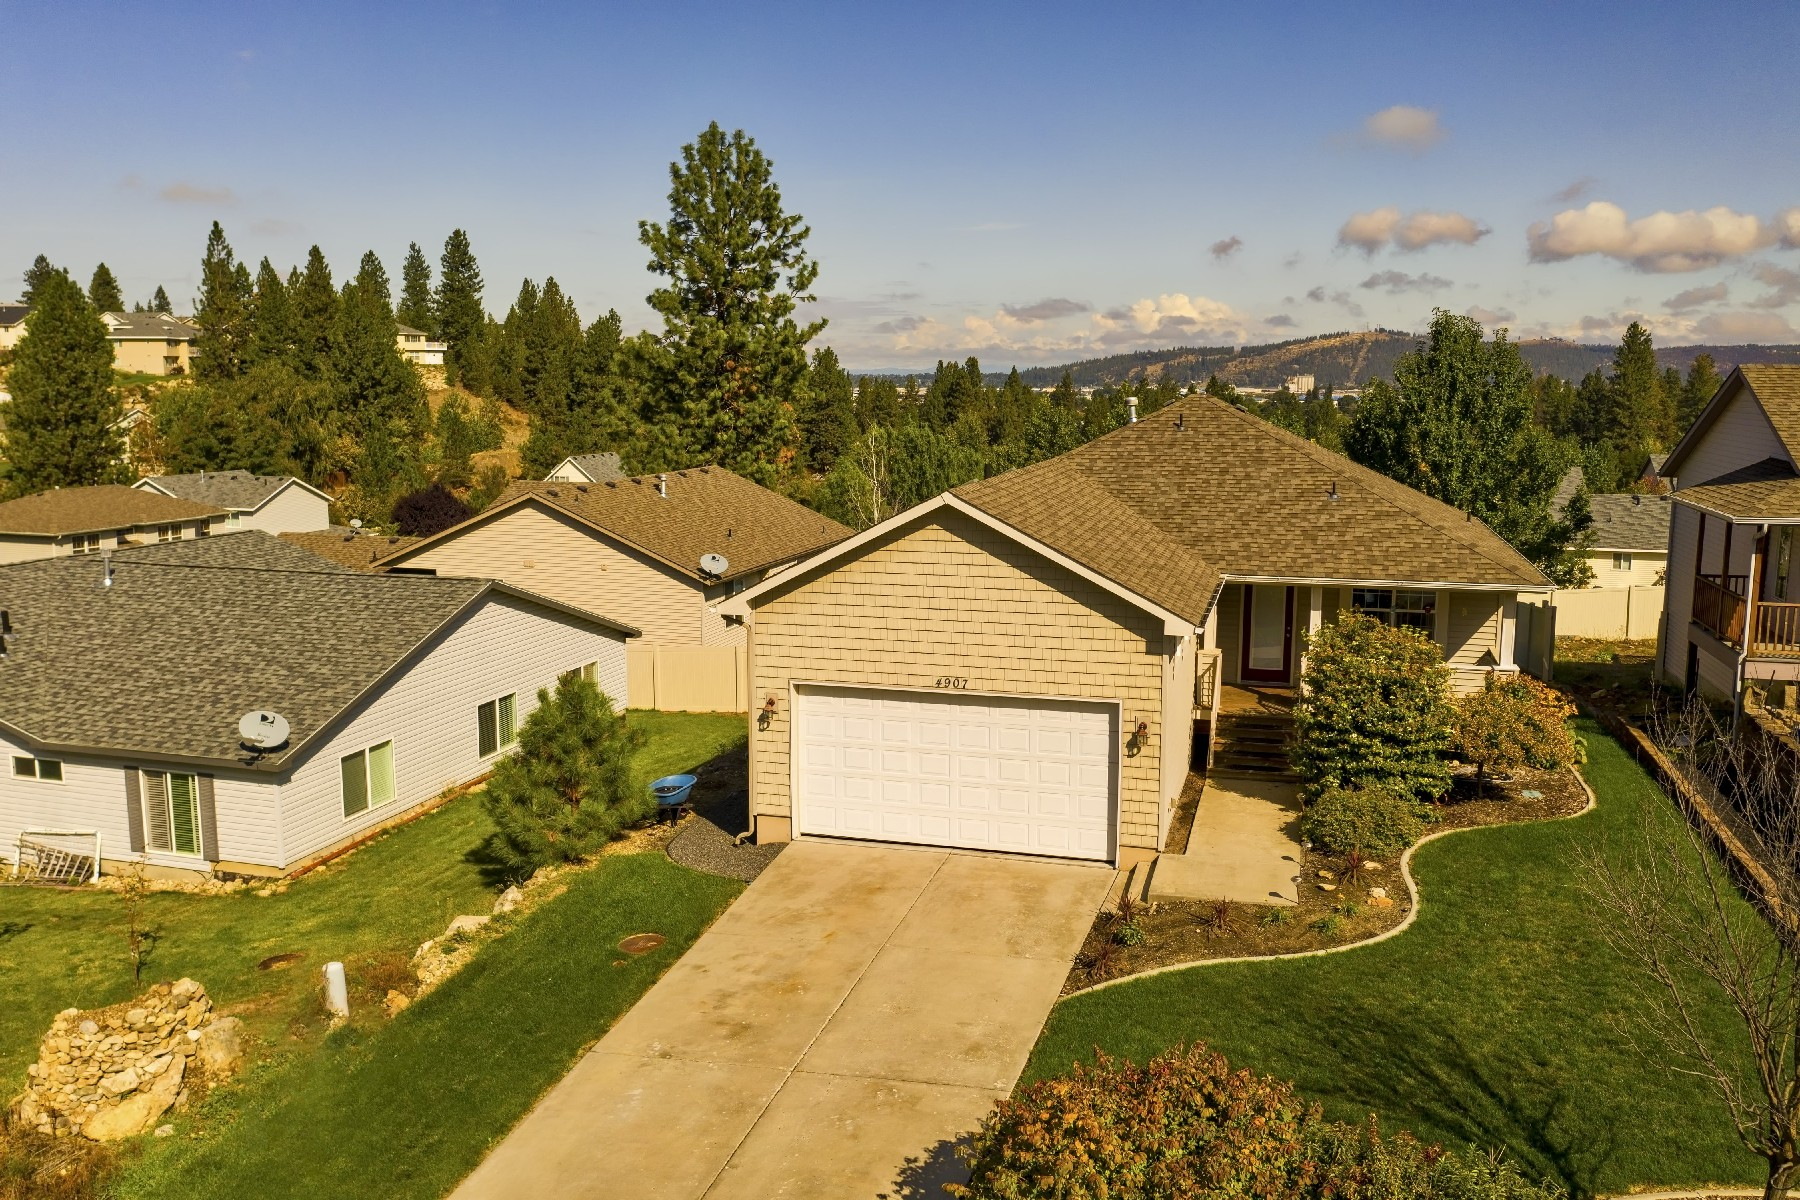 Single Family Homes for Sale at GORGEOUS RANCHER/DAYLIGHT BASEMENT W/ VIEW 4907 E 15TH Spokane Valley, Washington 99212 United States